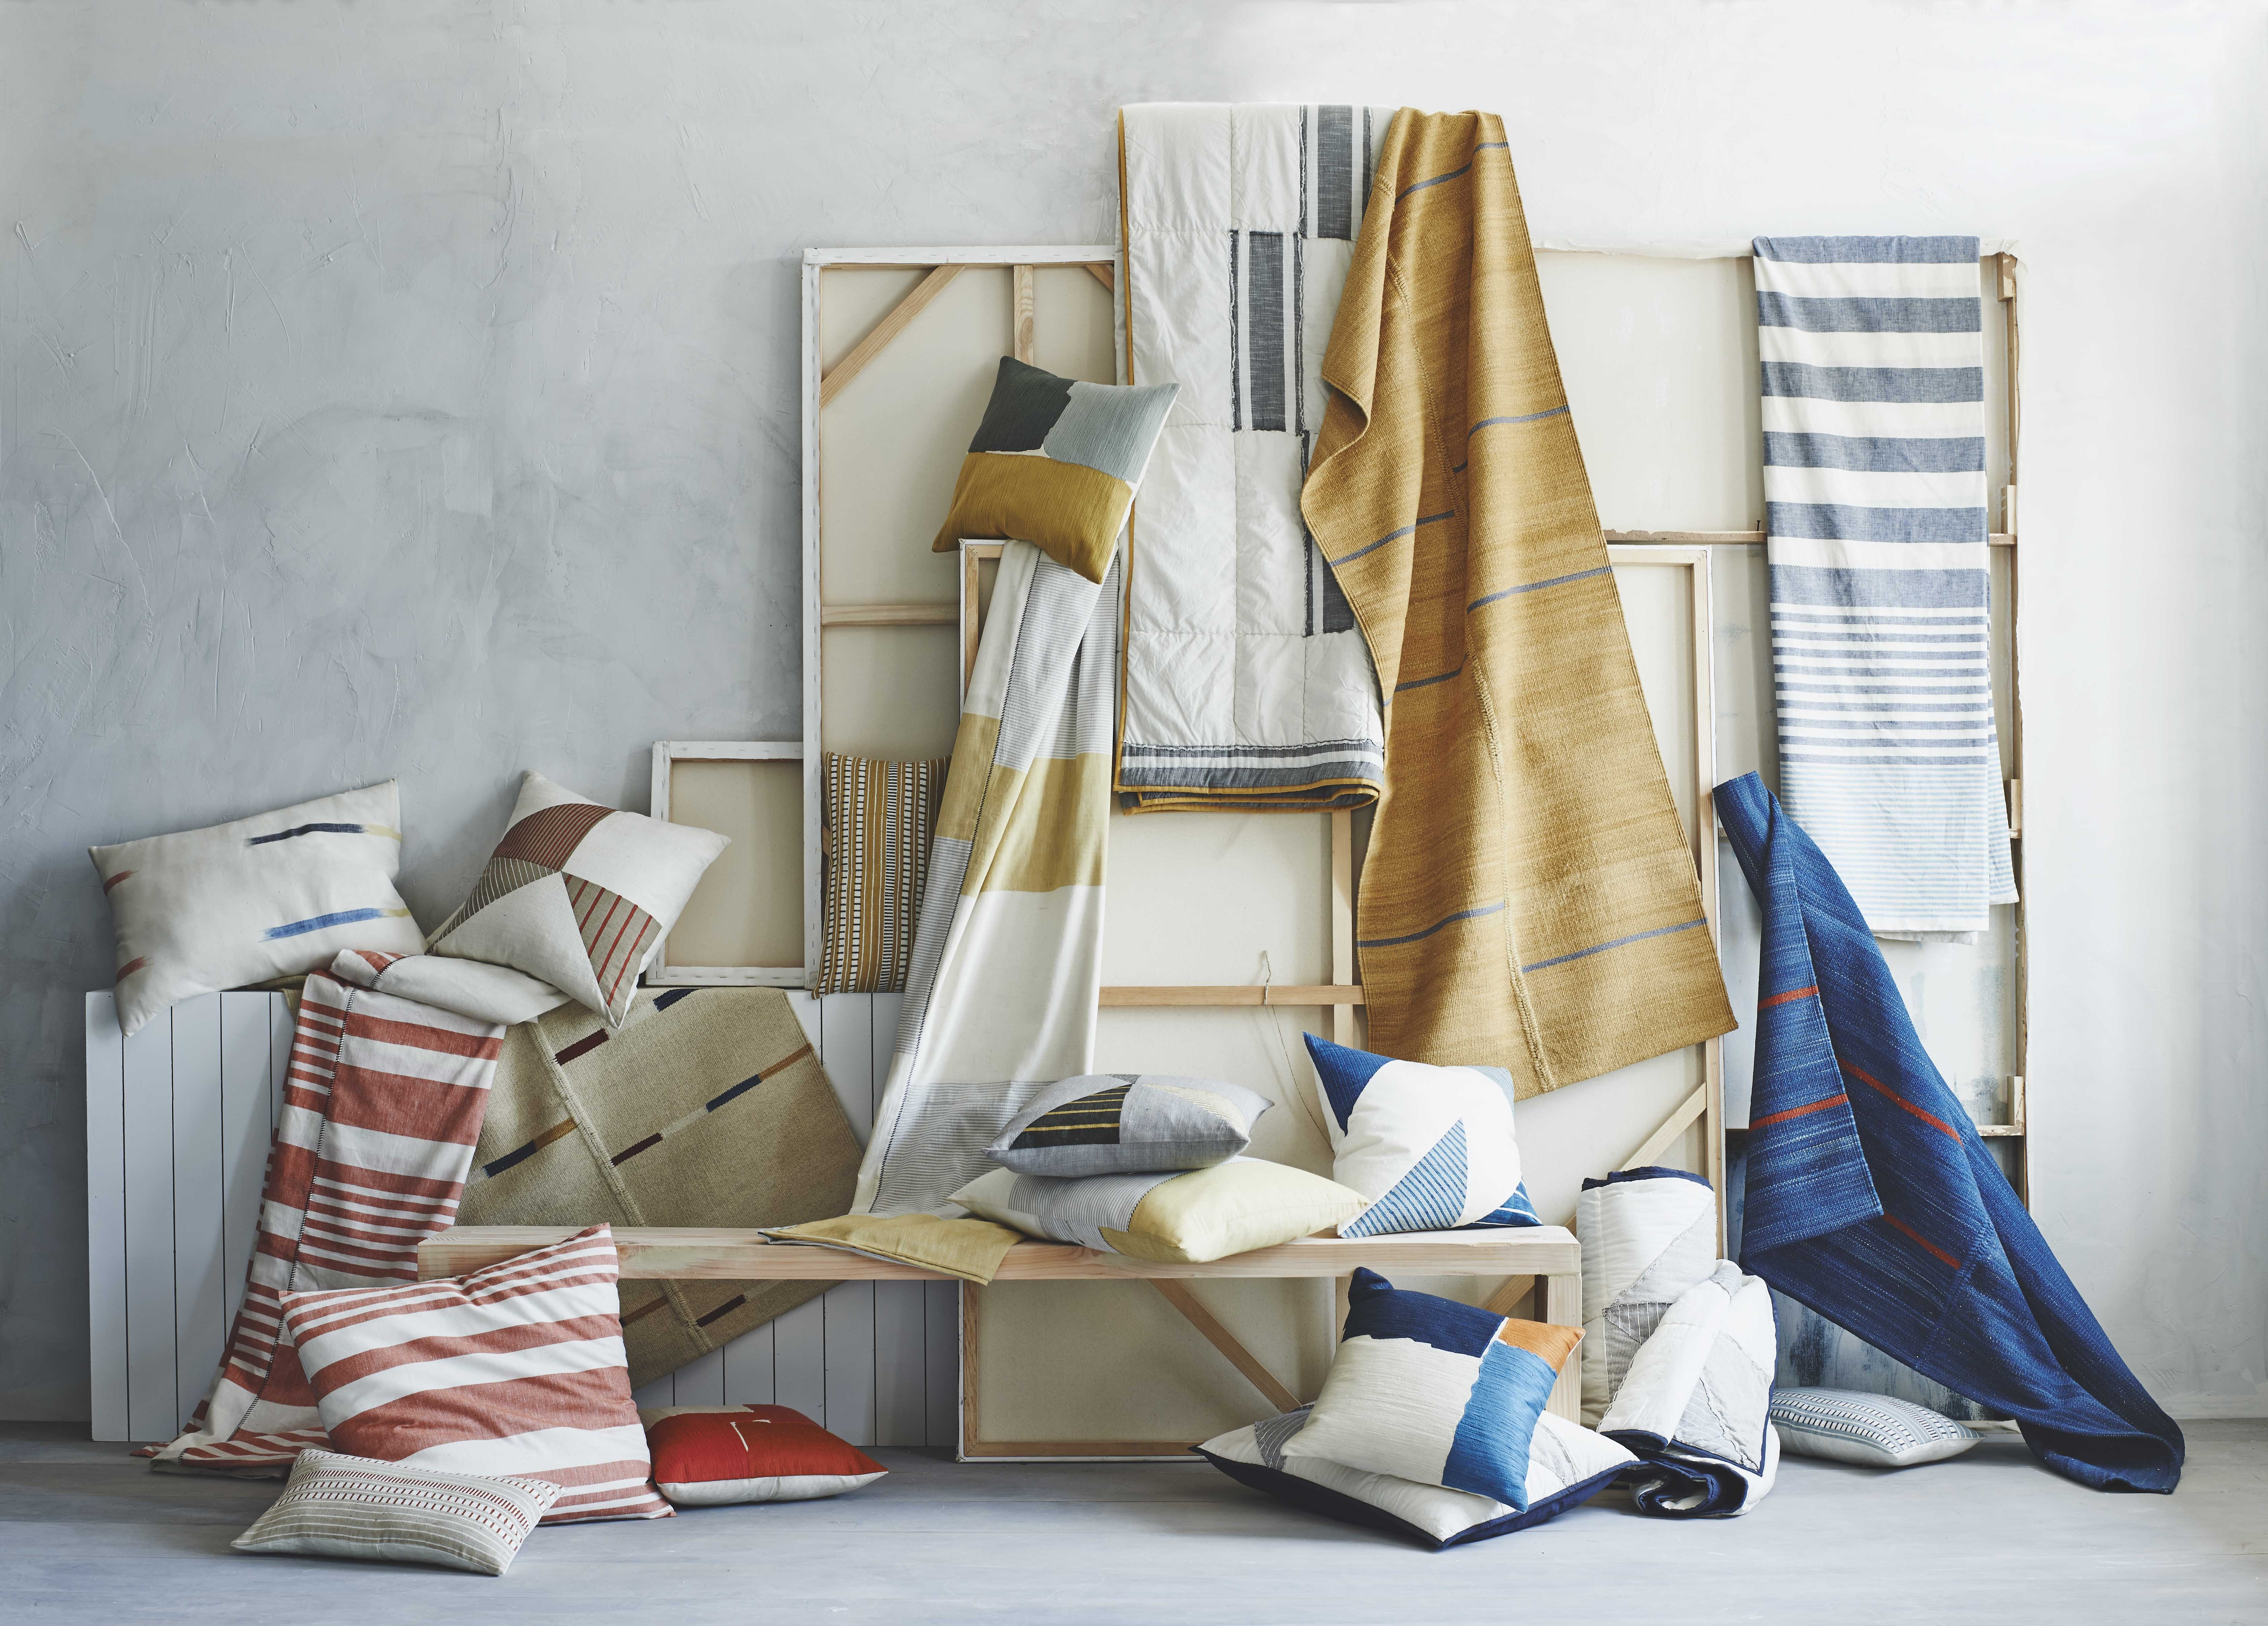 West elm collection new designs that define - Download High Resolution